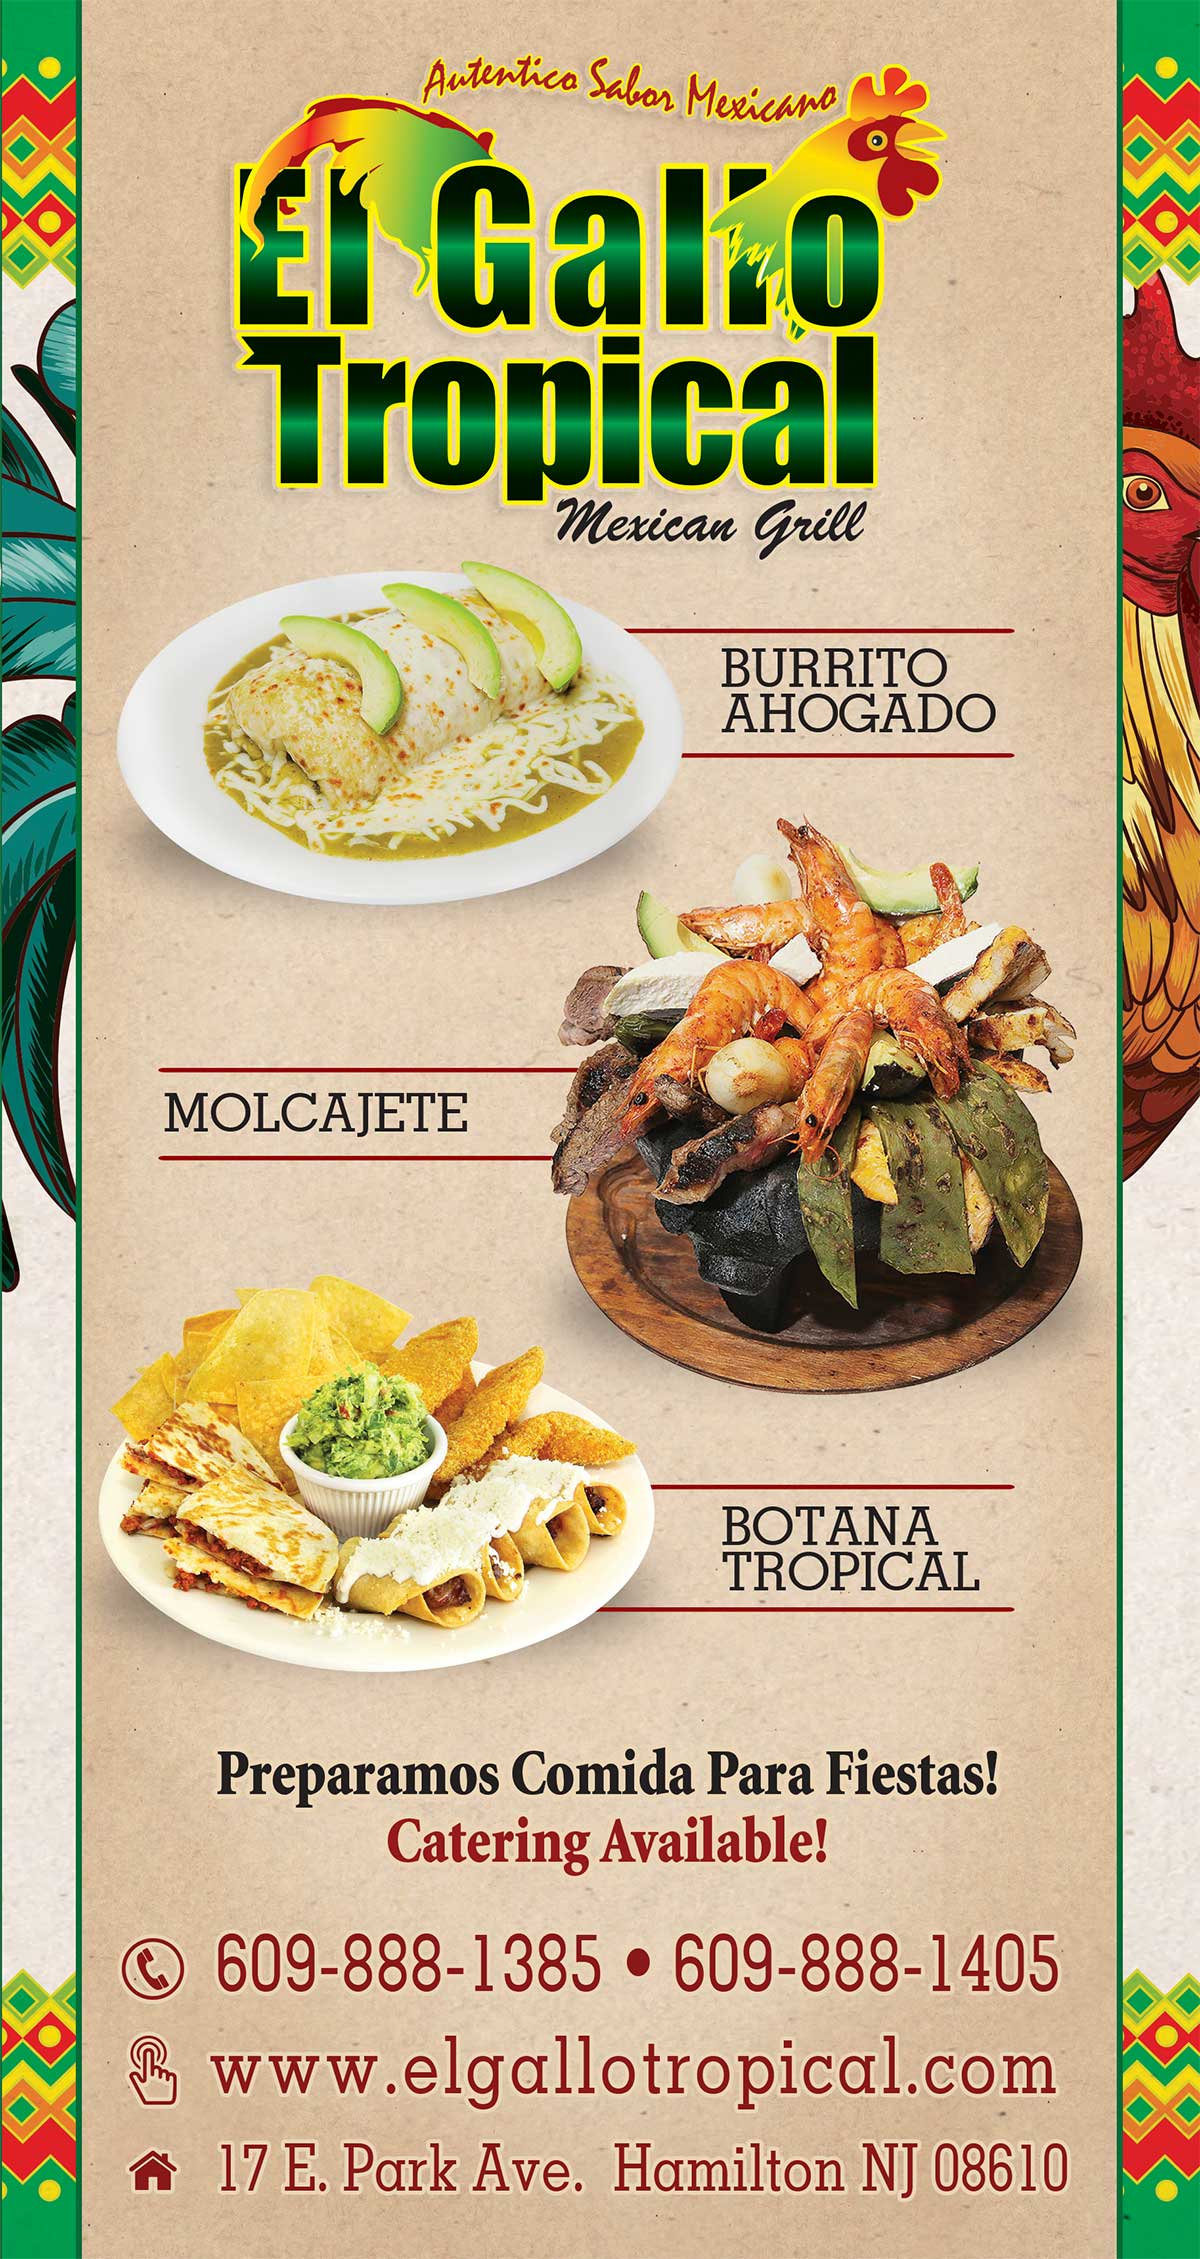 El-Gallo-Tropical-Menu-Page-1